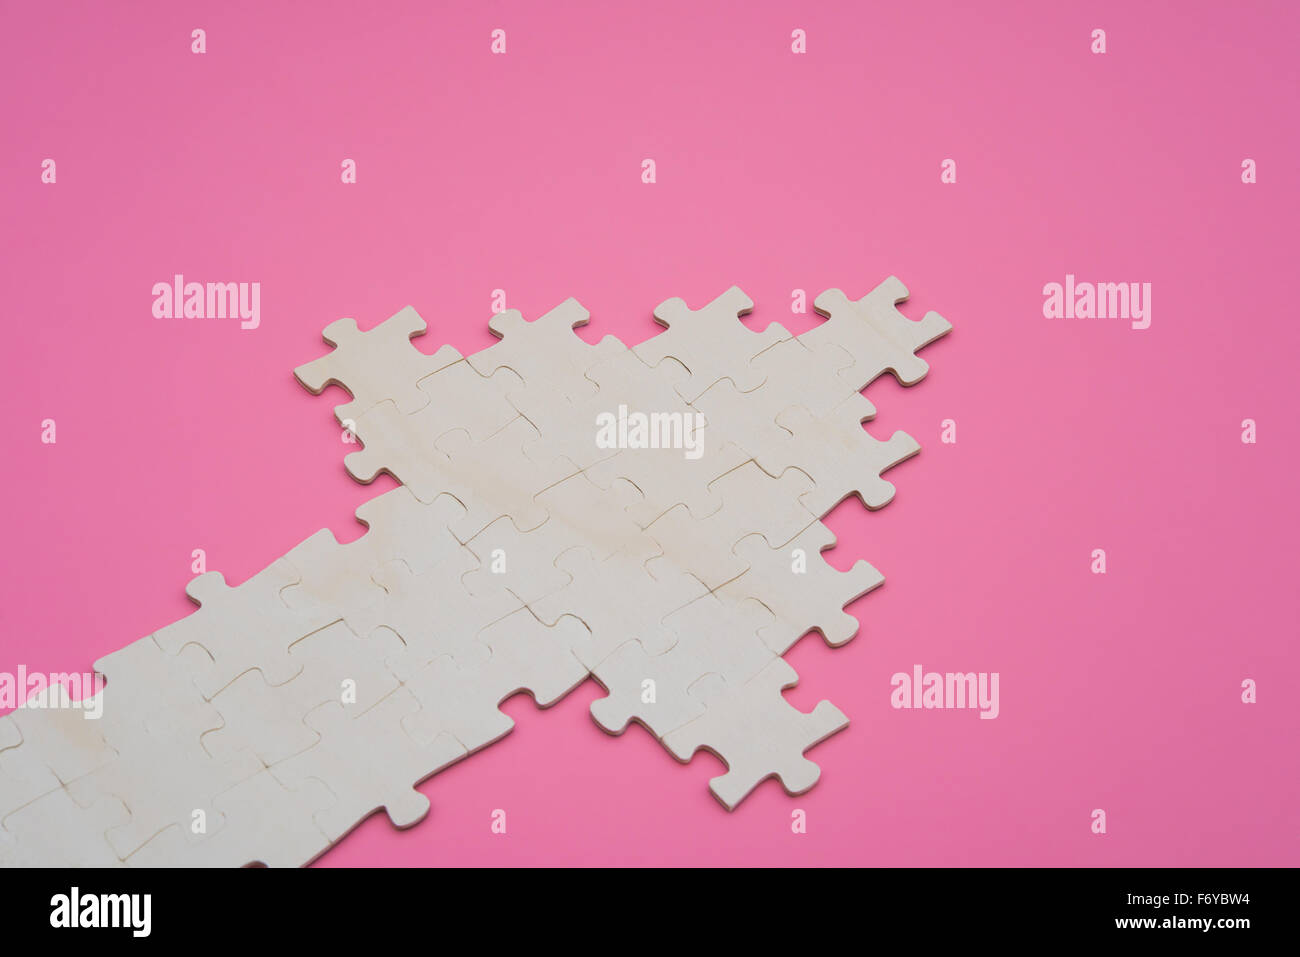 Puzzle Shaped Stock Photos & Puzzle Shaped Stock Images - Alamy